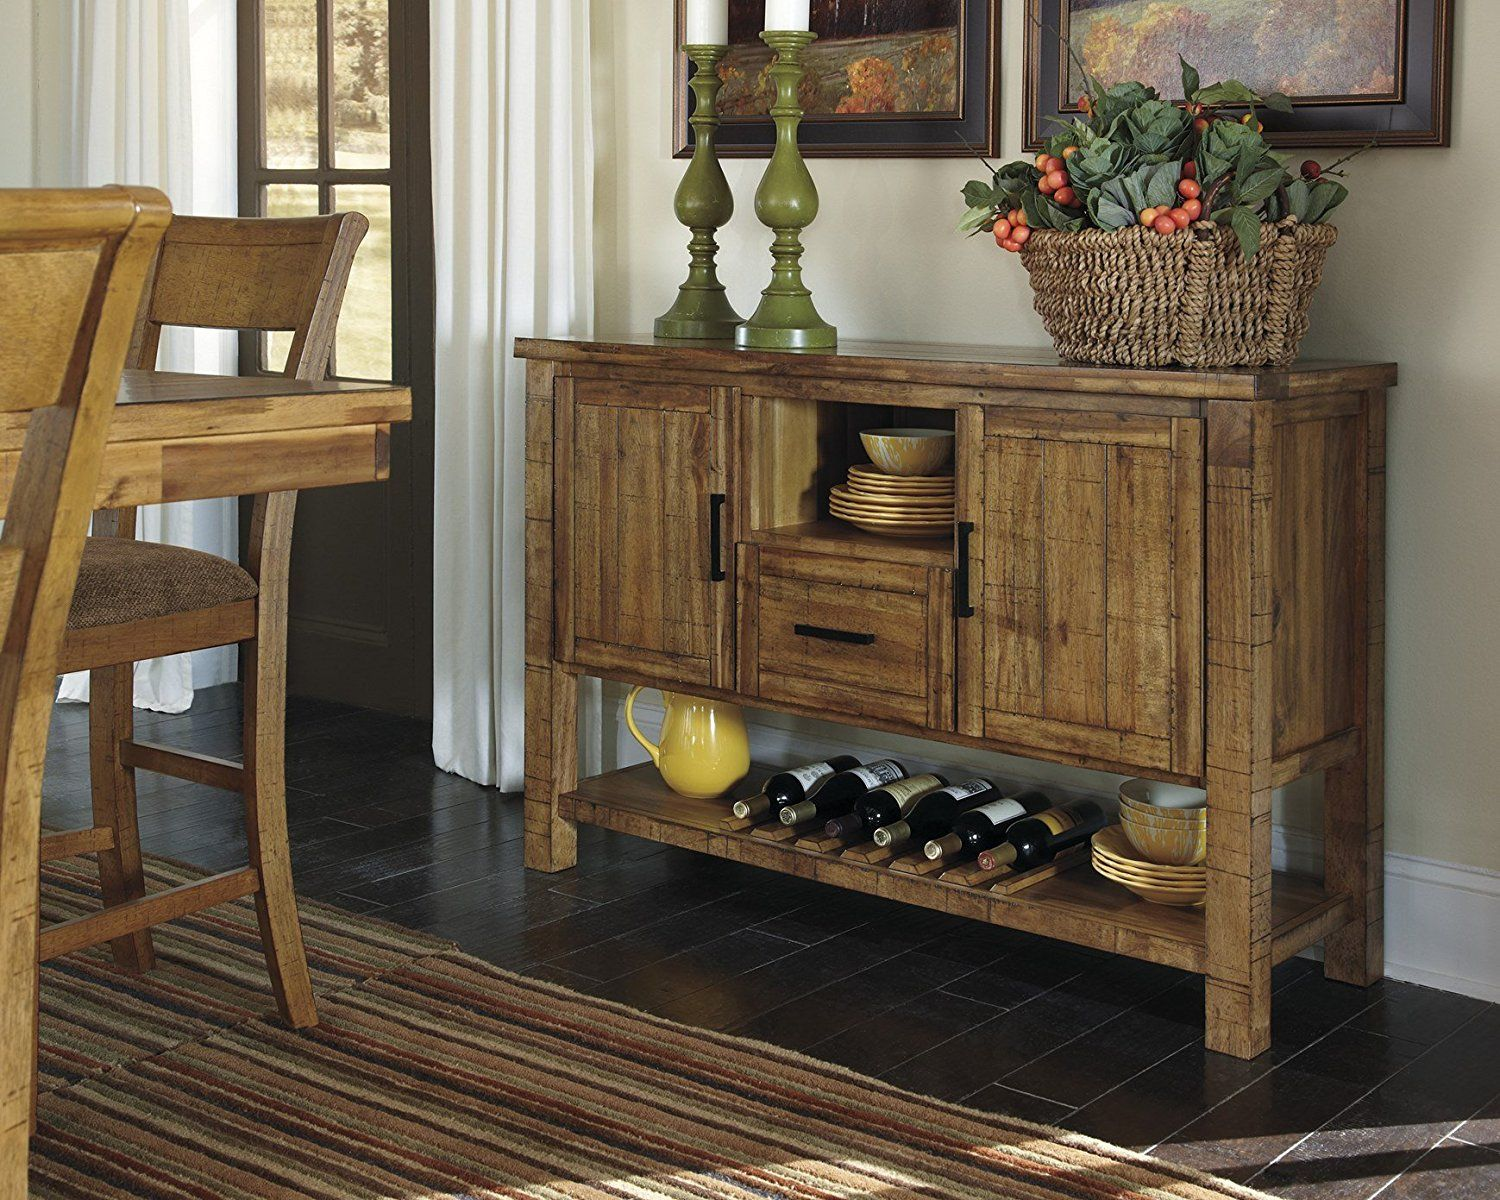 Cultivate An Inviting Place For Mealore With This Rustic Rectangular Dining Room Counter Extension Table The Framed Design Has A Thick